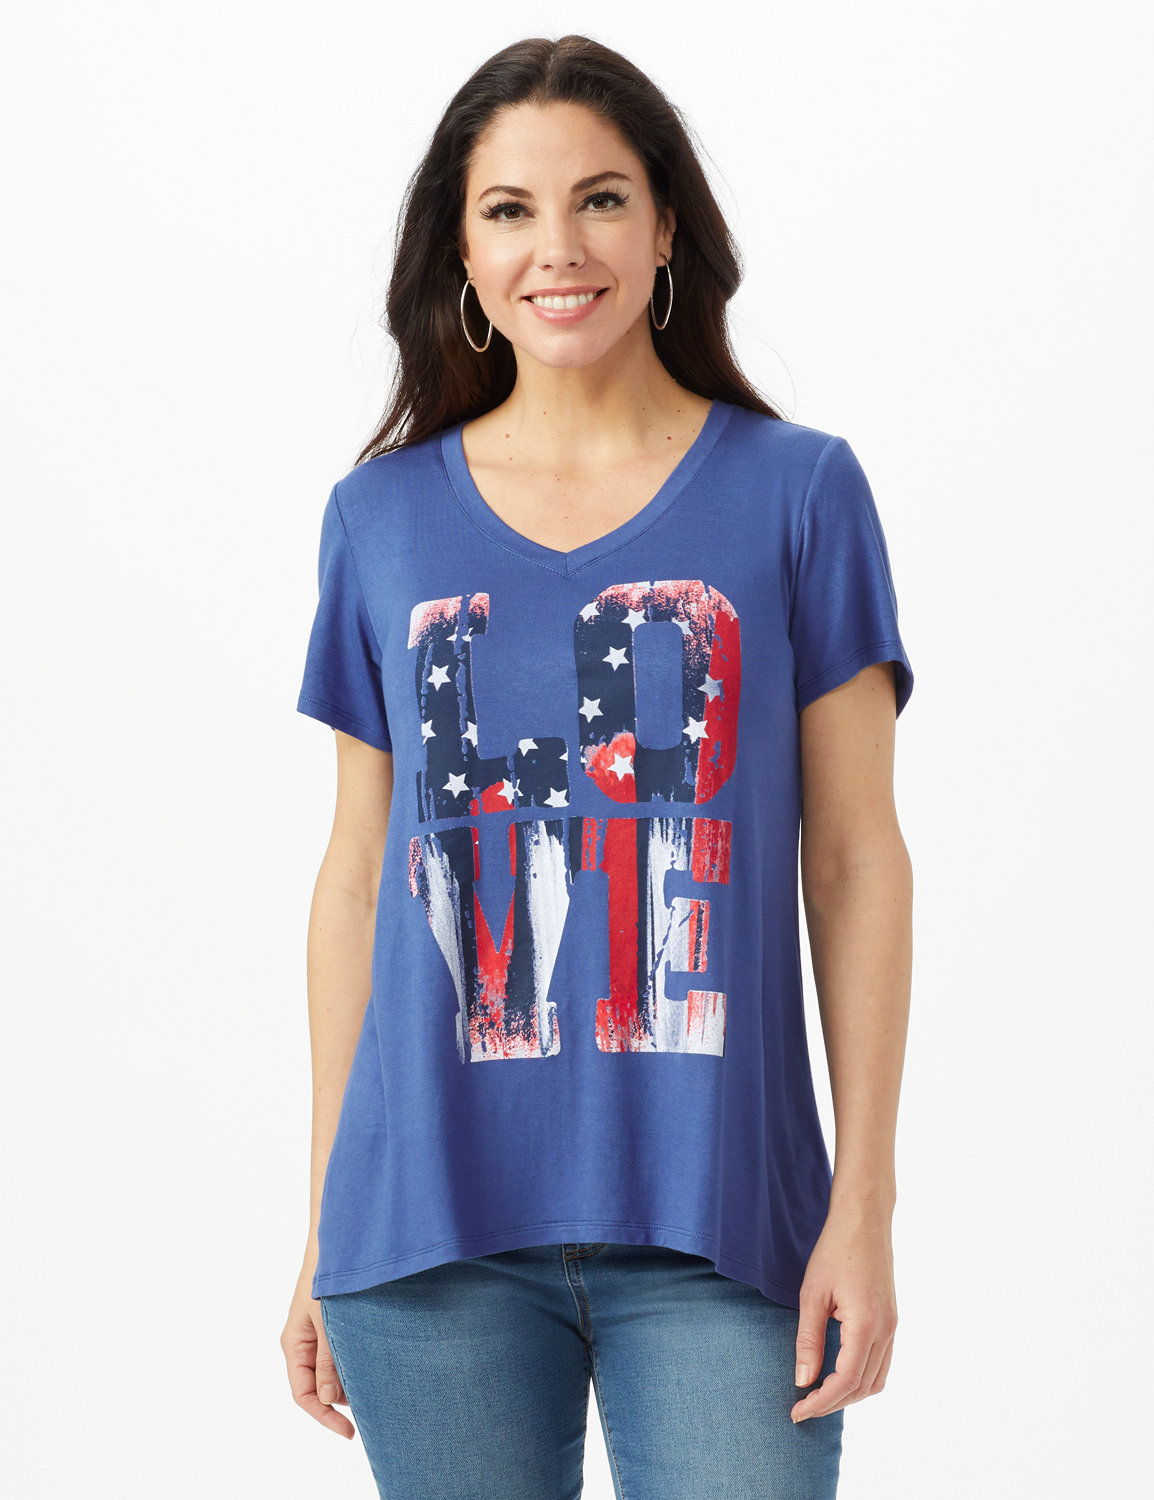 LOVE Hi-Lo Screen Tee -Indigo - Front